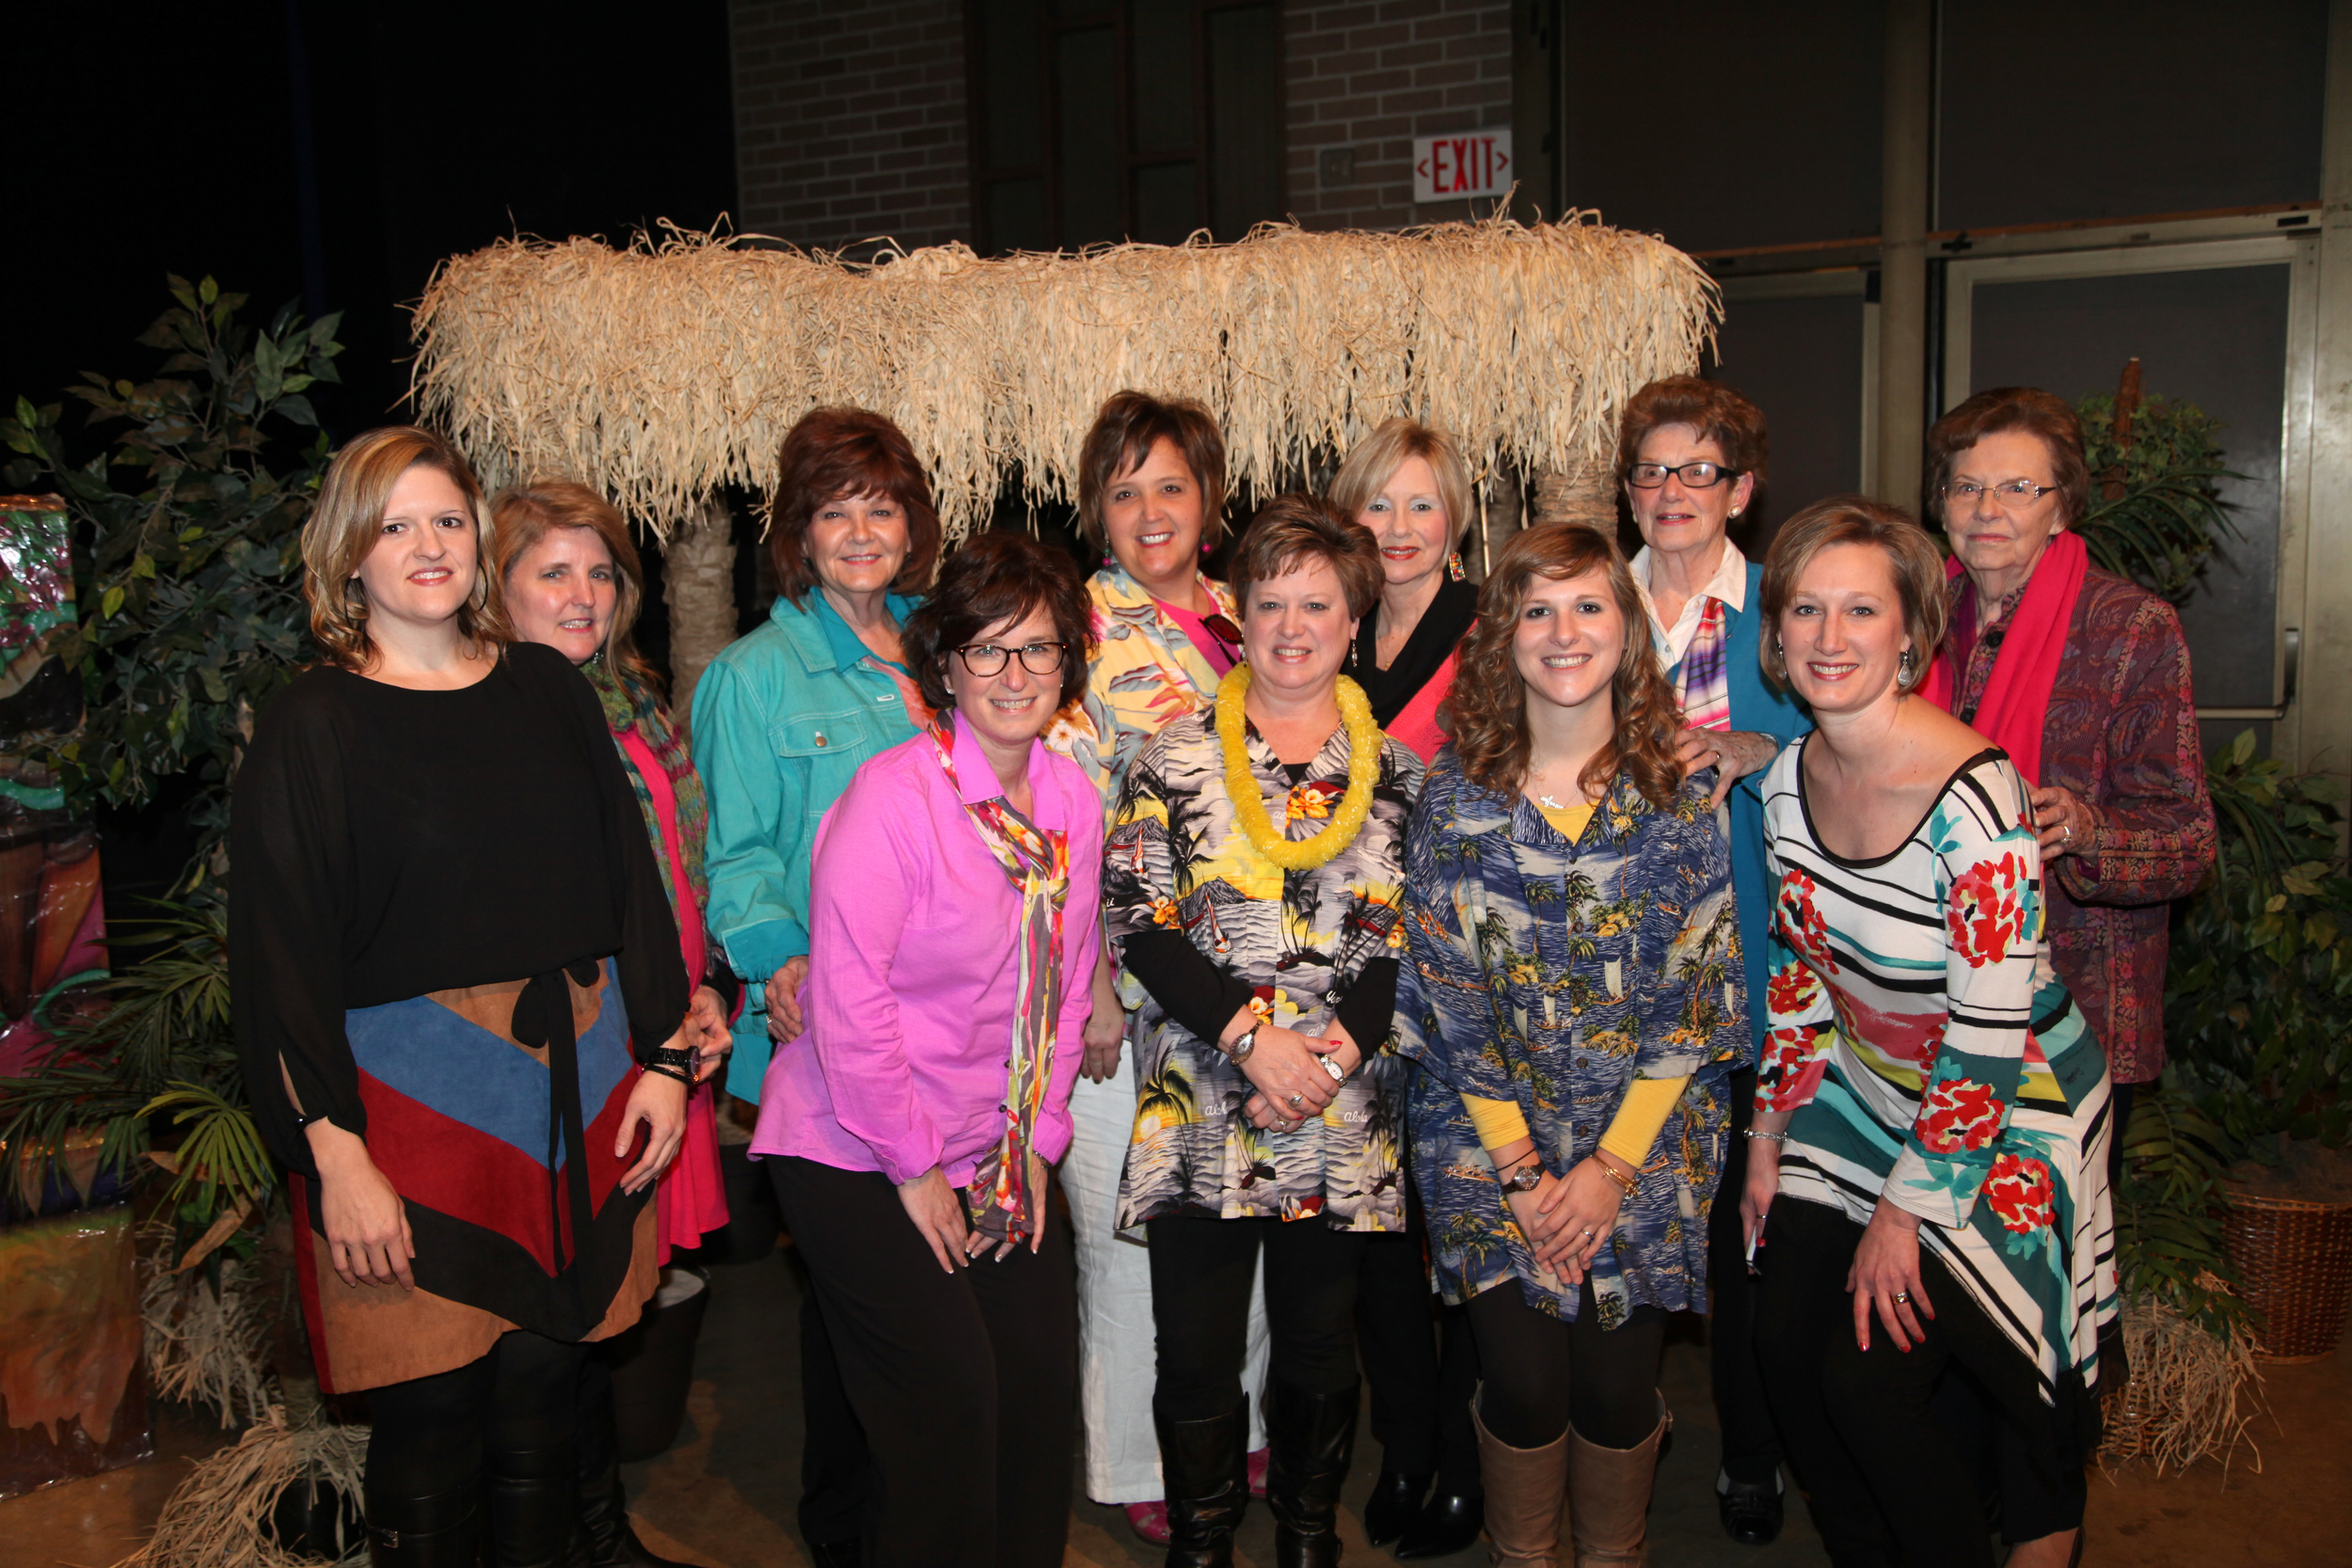 Back: Lisa Brasfield, Lena Gilliland, Irene Park, Diane Autry, Betty Williams & Connie Curbo Front: Holly Garrett, Christy Hutchison, Valerie Hutchison, Lindsey Hutchison & Kristina Kail